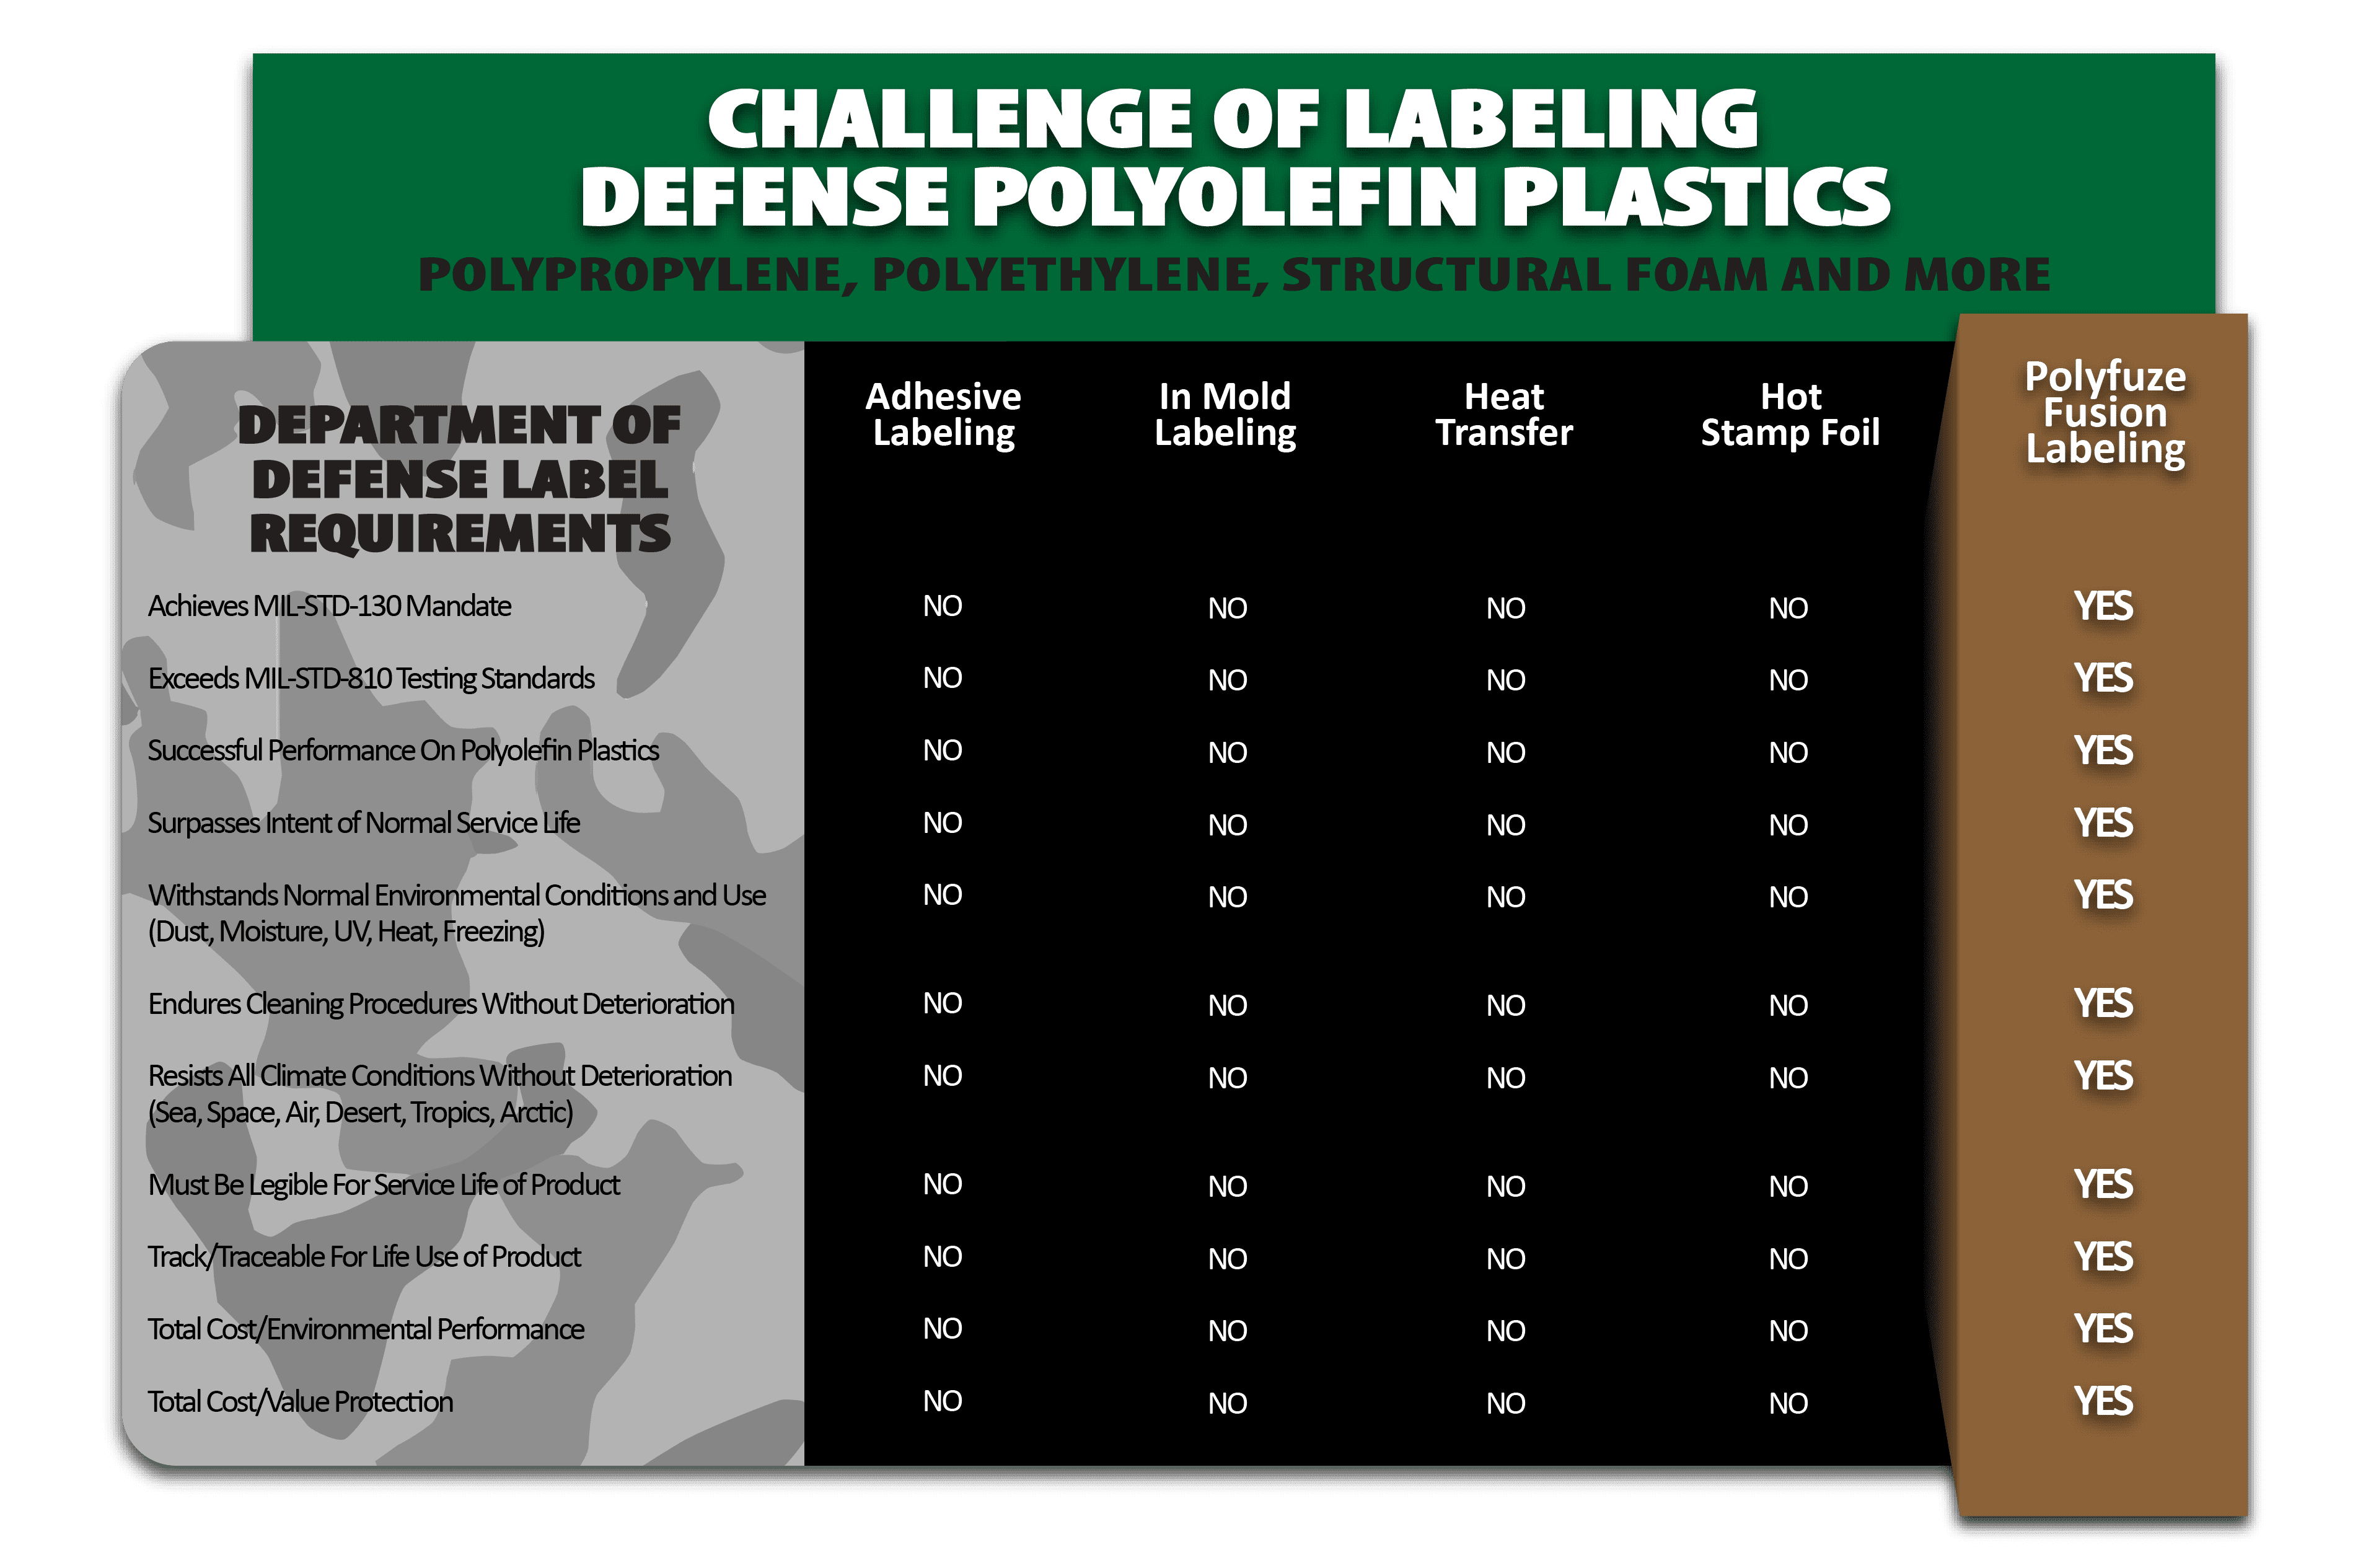 Fusion Labeling For Defense & Military Polymers